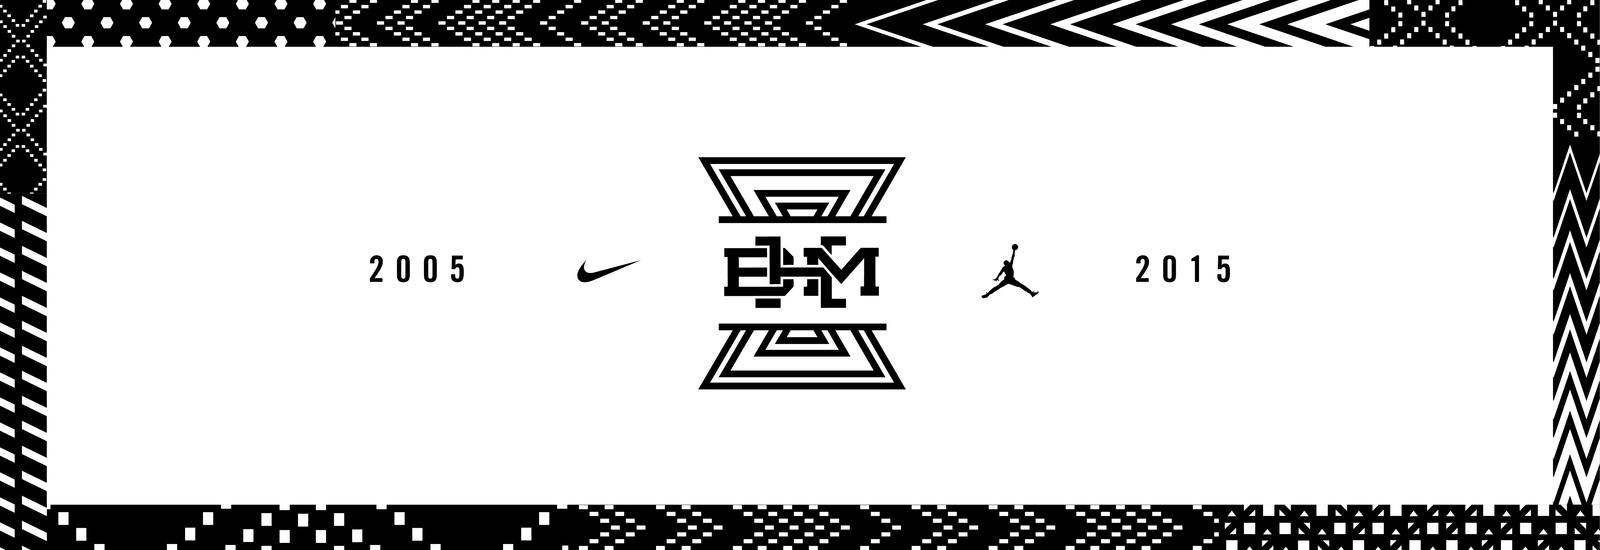 NIKE, Inc.'s 10 Year Commitment to Black History Month